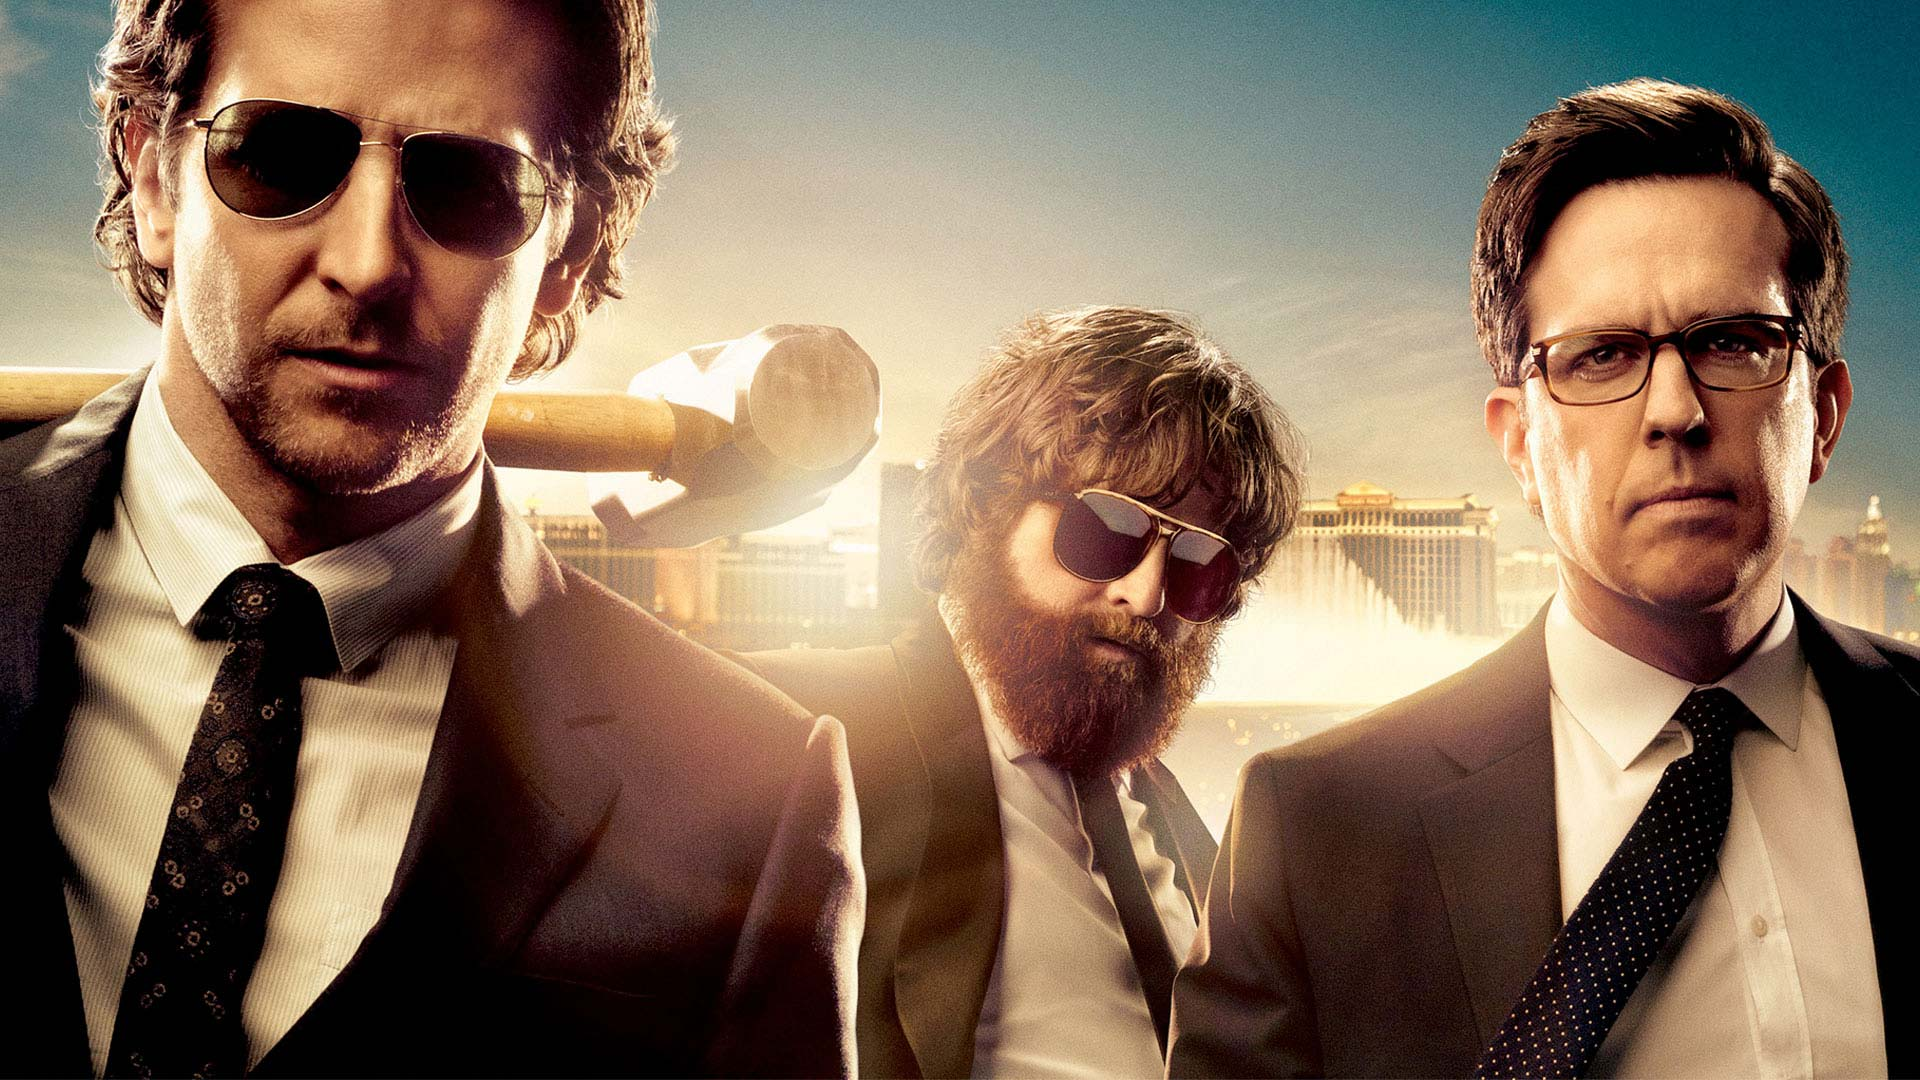 The Hangover 2 Pictures At The End